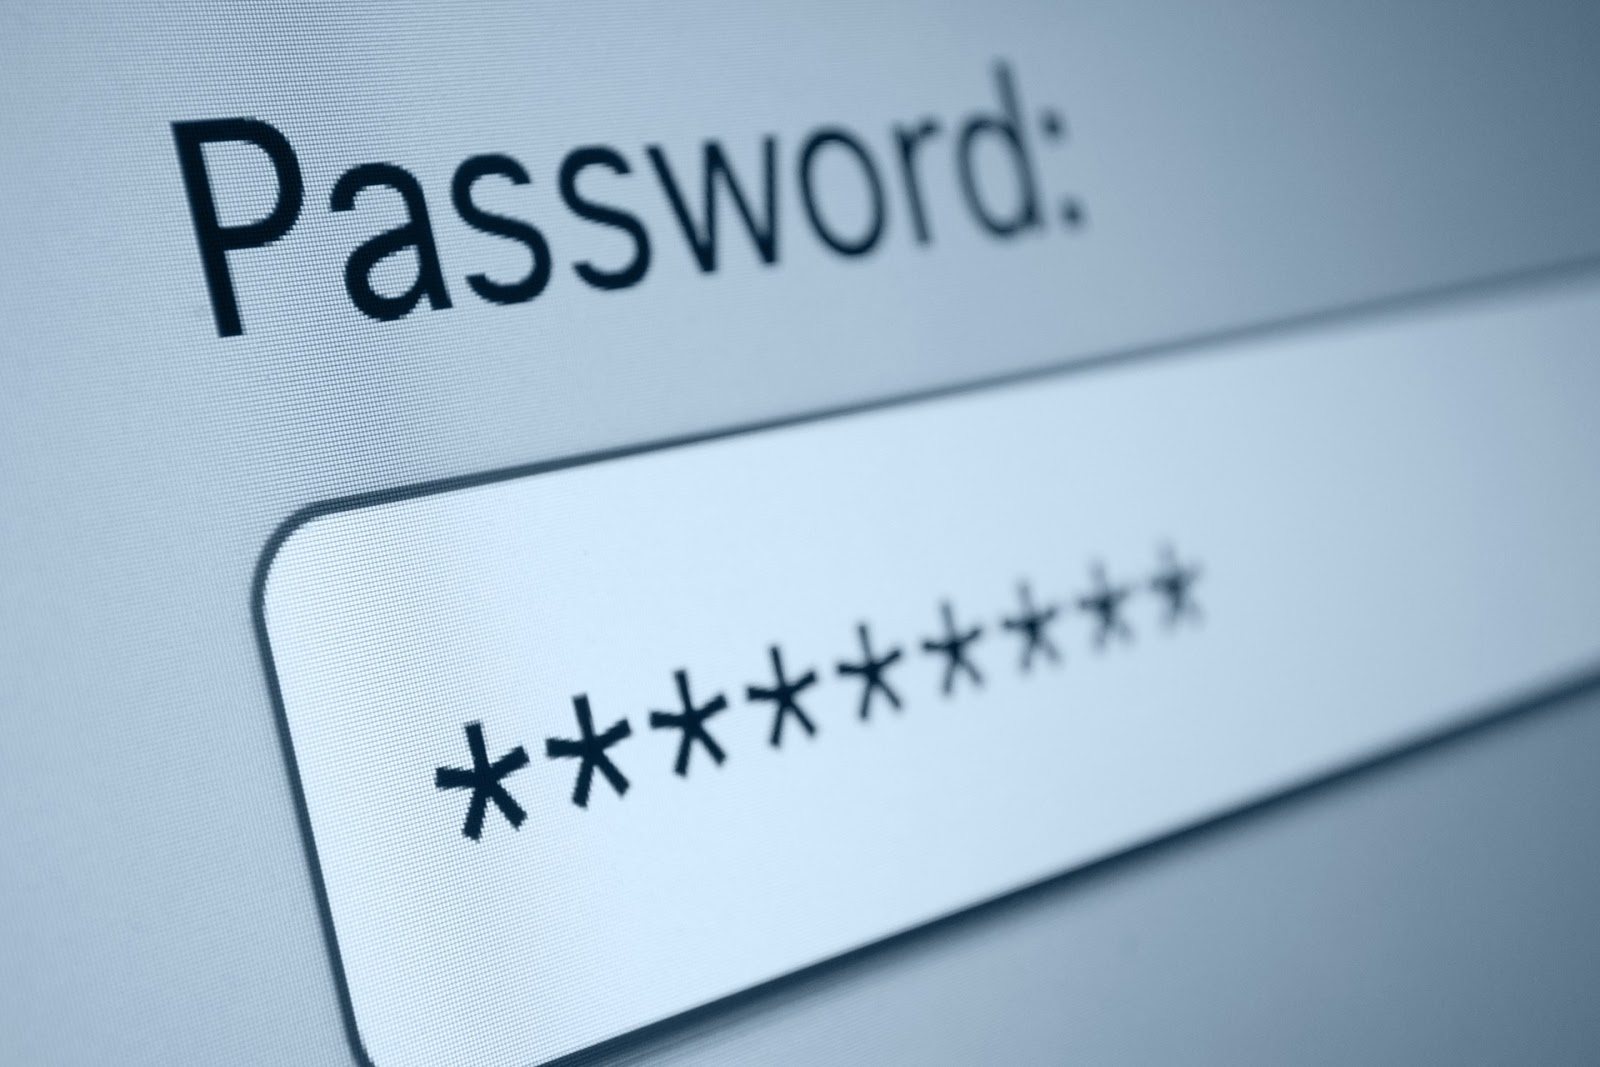 10 Most Popular Password Cracking Tools Updated for 2017